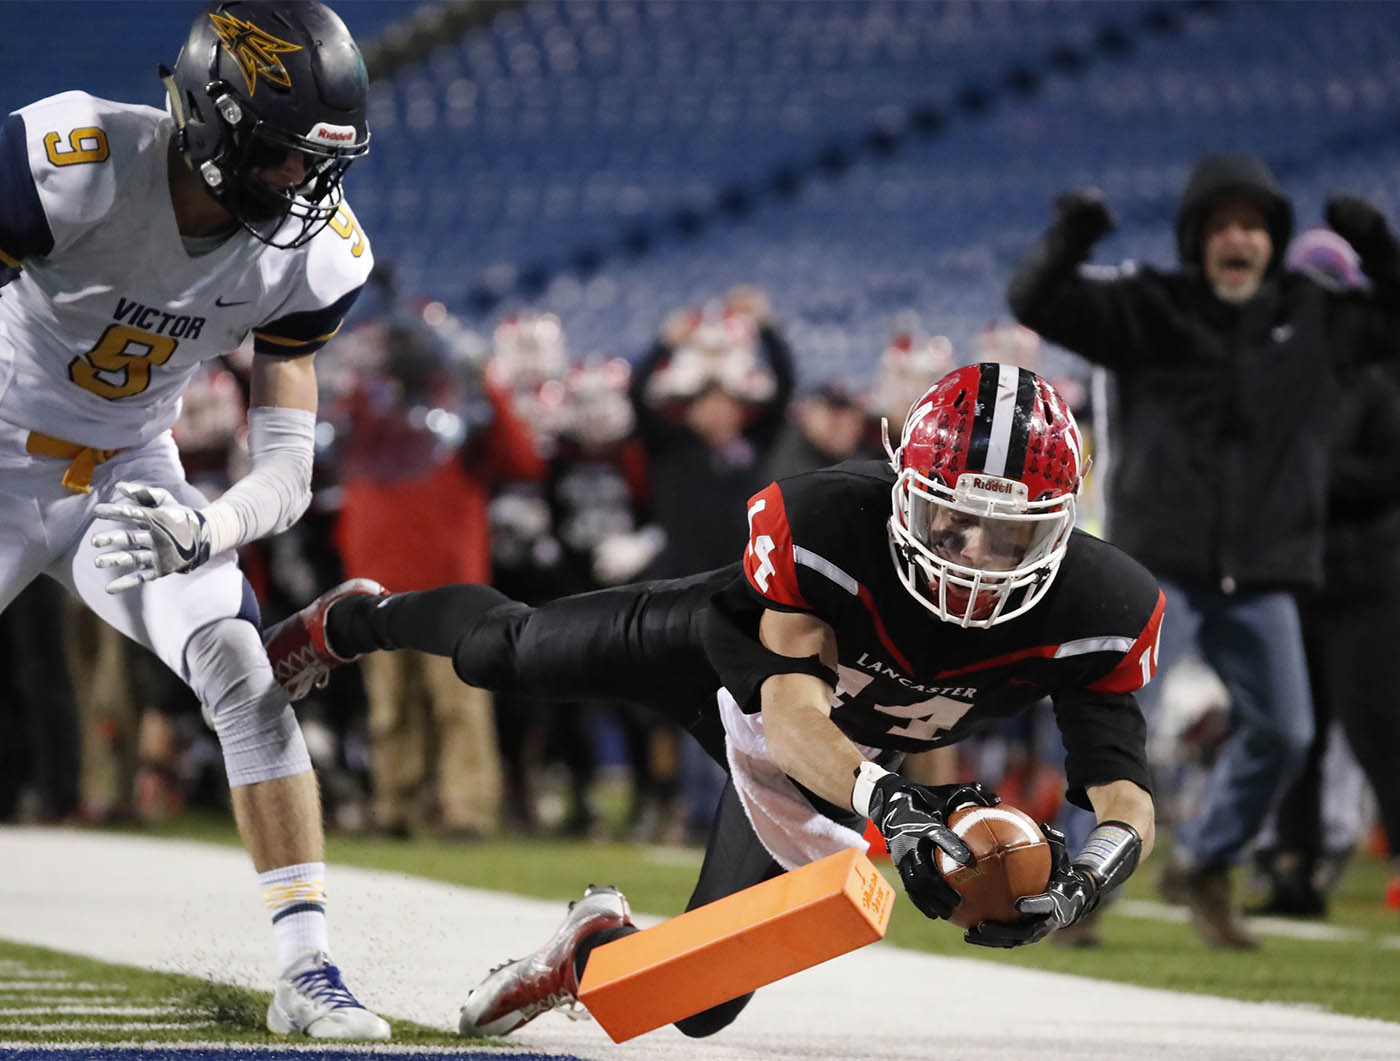 Lancaster receiver Max Giordano catches a touchdown pass against Victor during second half action of the Class C Far West Regional at New Era Field on Saturday, Nov. 12, 2016.(Harry Scull Jr./Buffalo News)